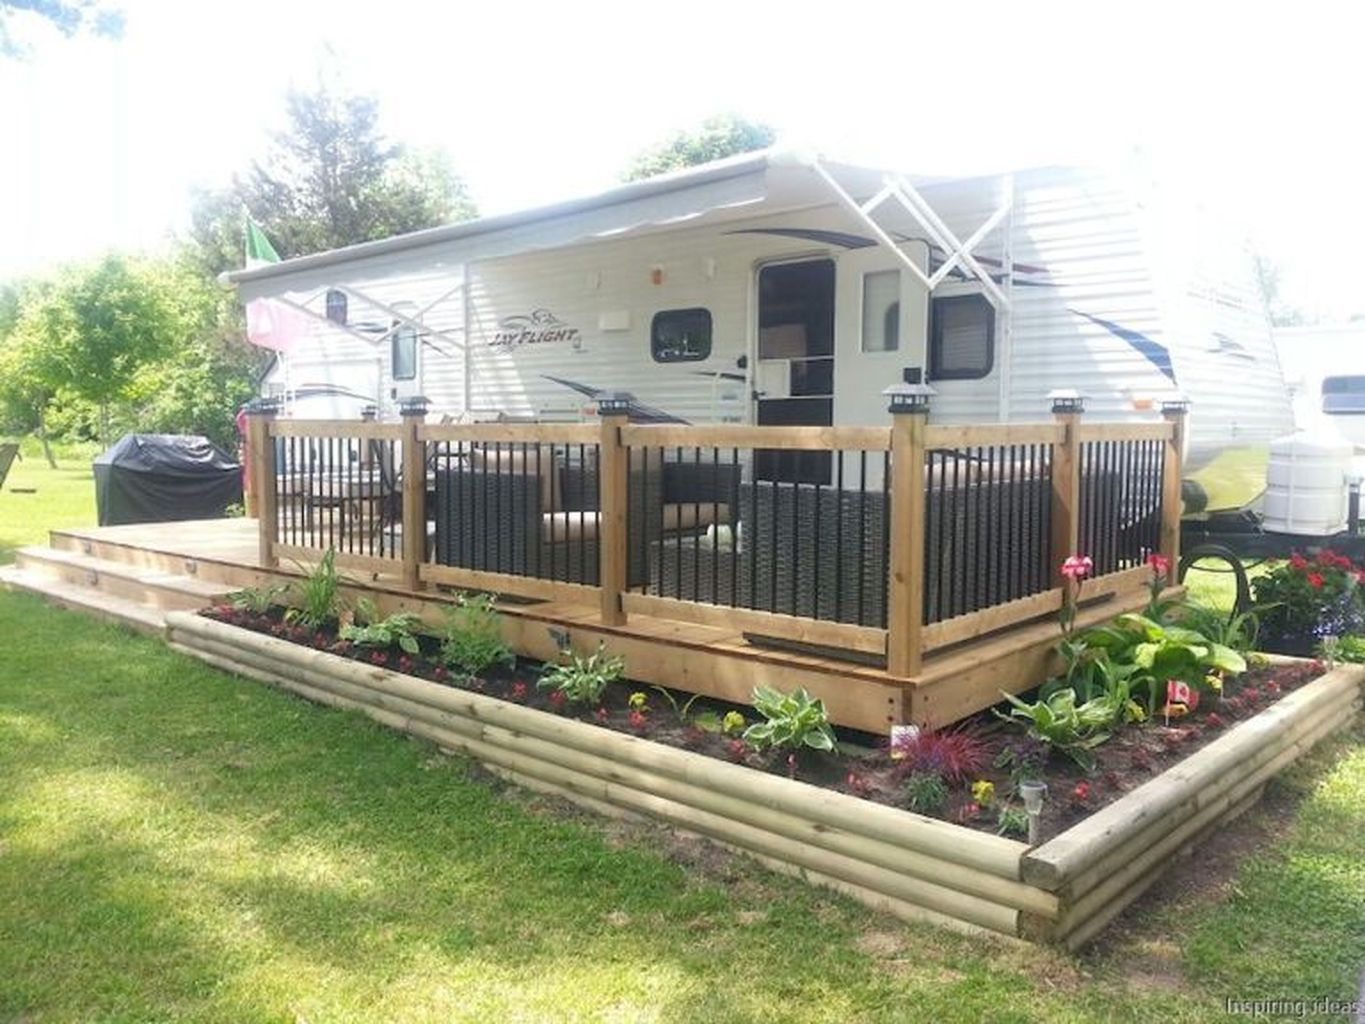 69 Clever RV Living Ideas and Tips 05 - Lovelyving #rvliving